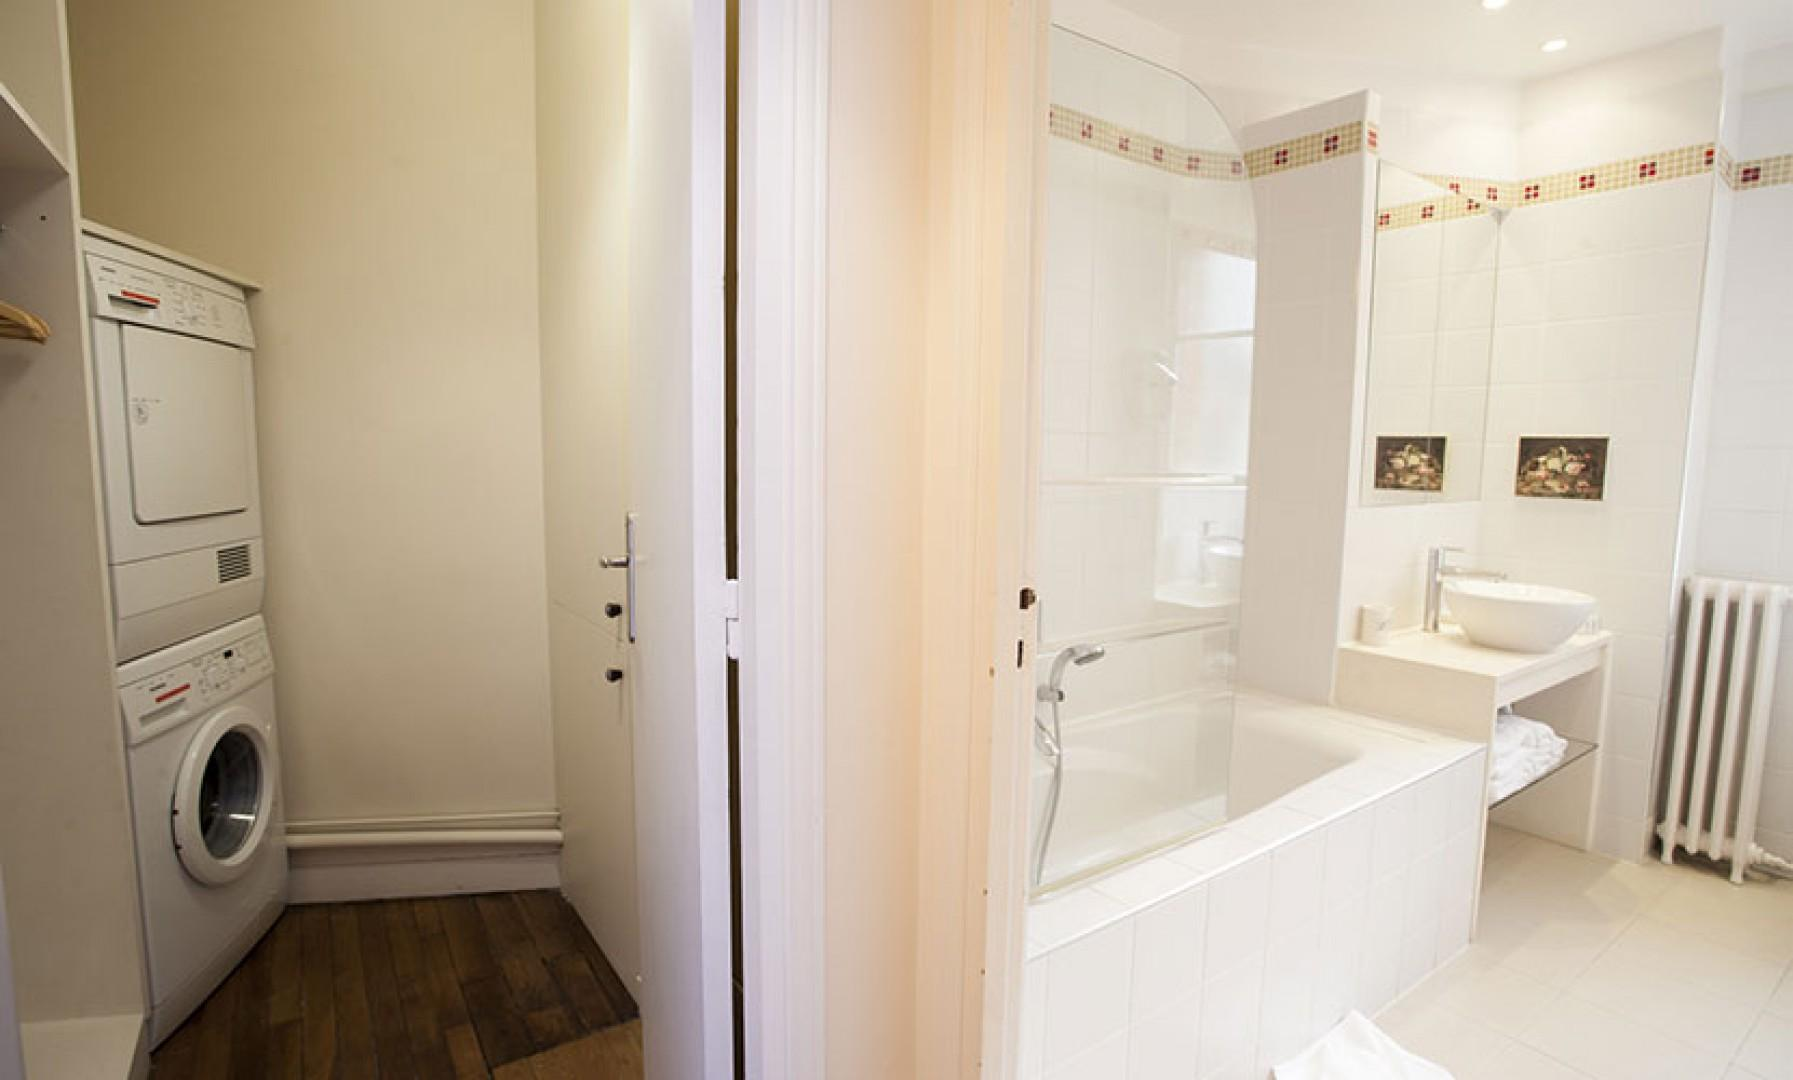 There is a separate washer and dryer by the en suite bathroom.